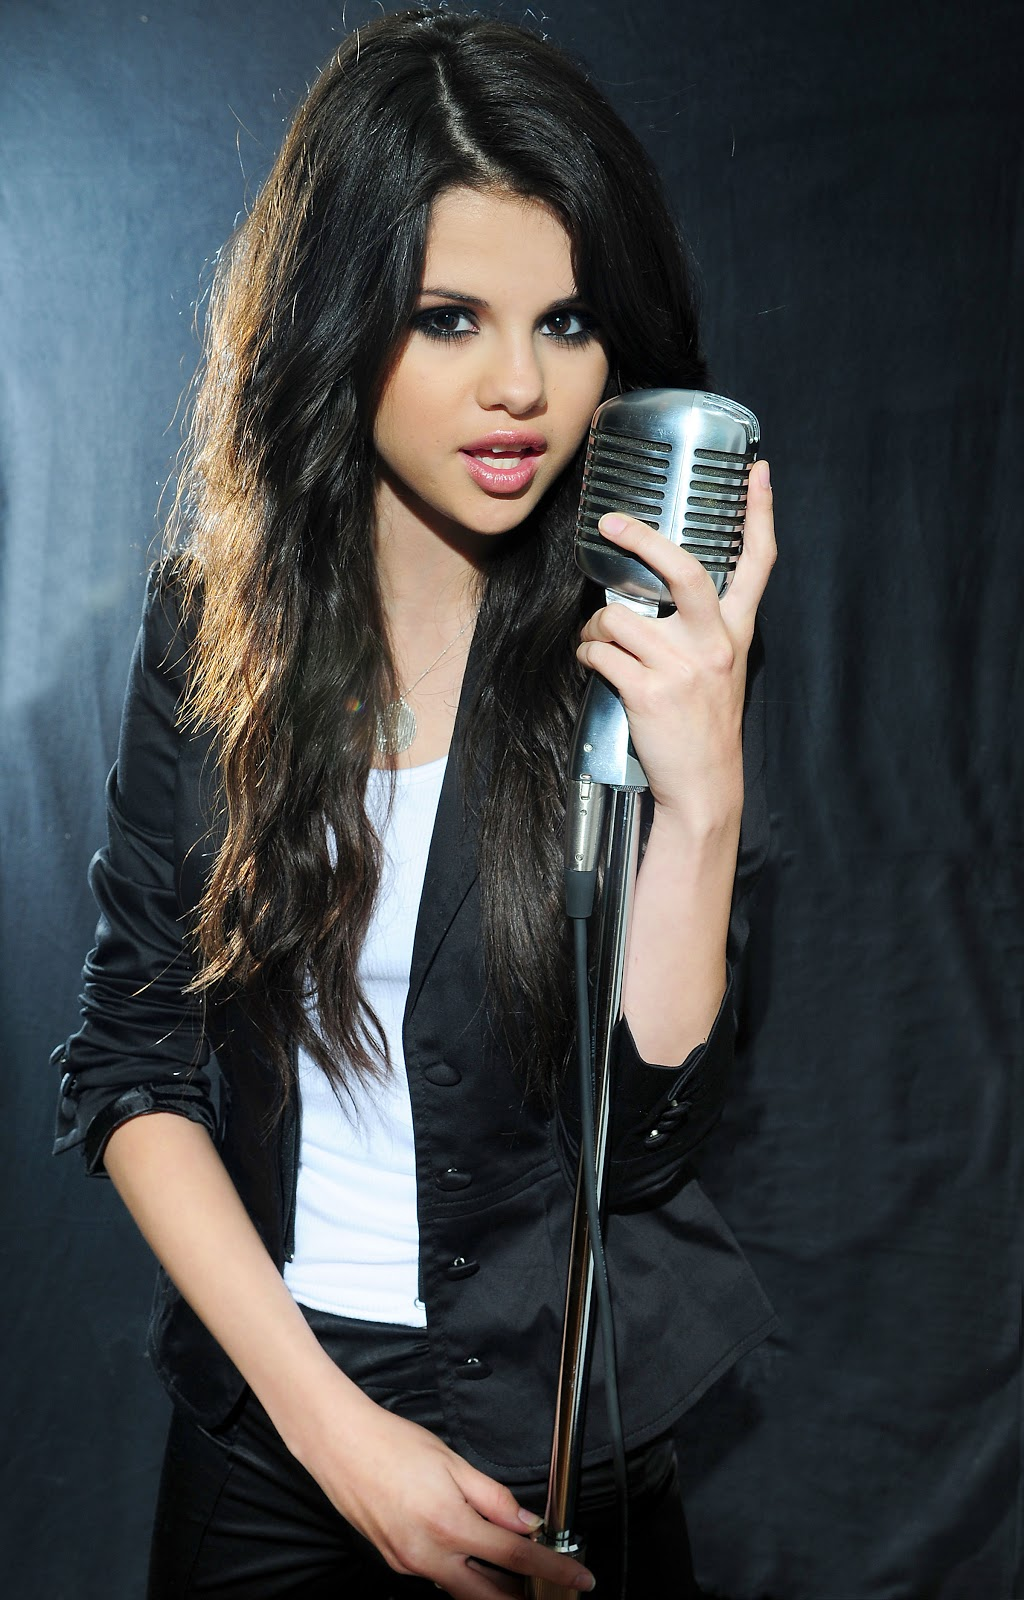 Fashion & Celebrities: Selena Gomez Music career and Pictures